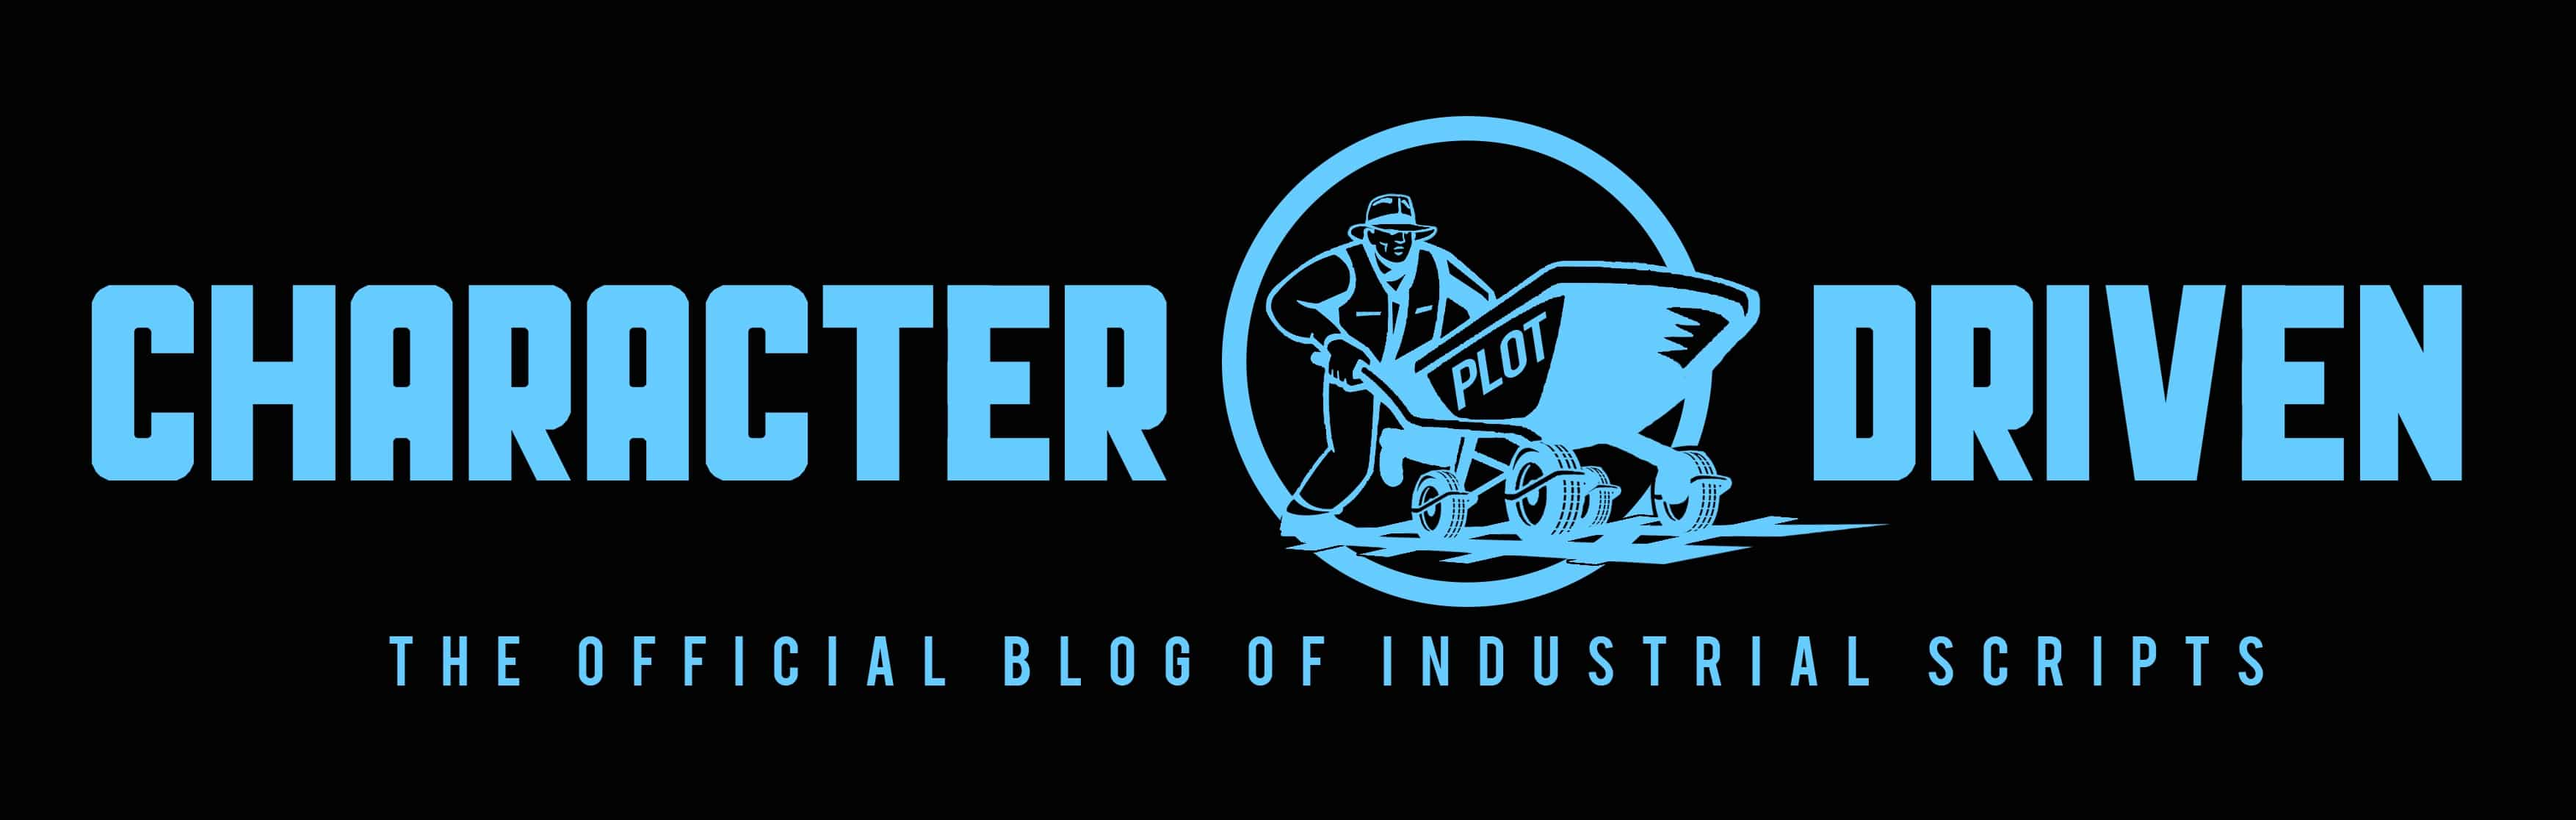 Character Driven - The Official Blog of Screenplay Consultants Industrial Scripts